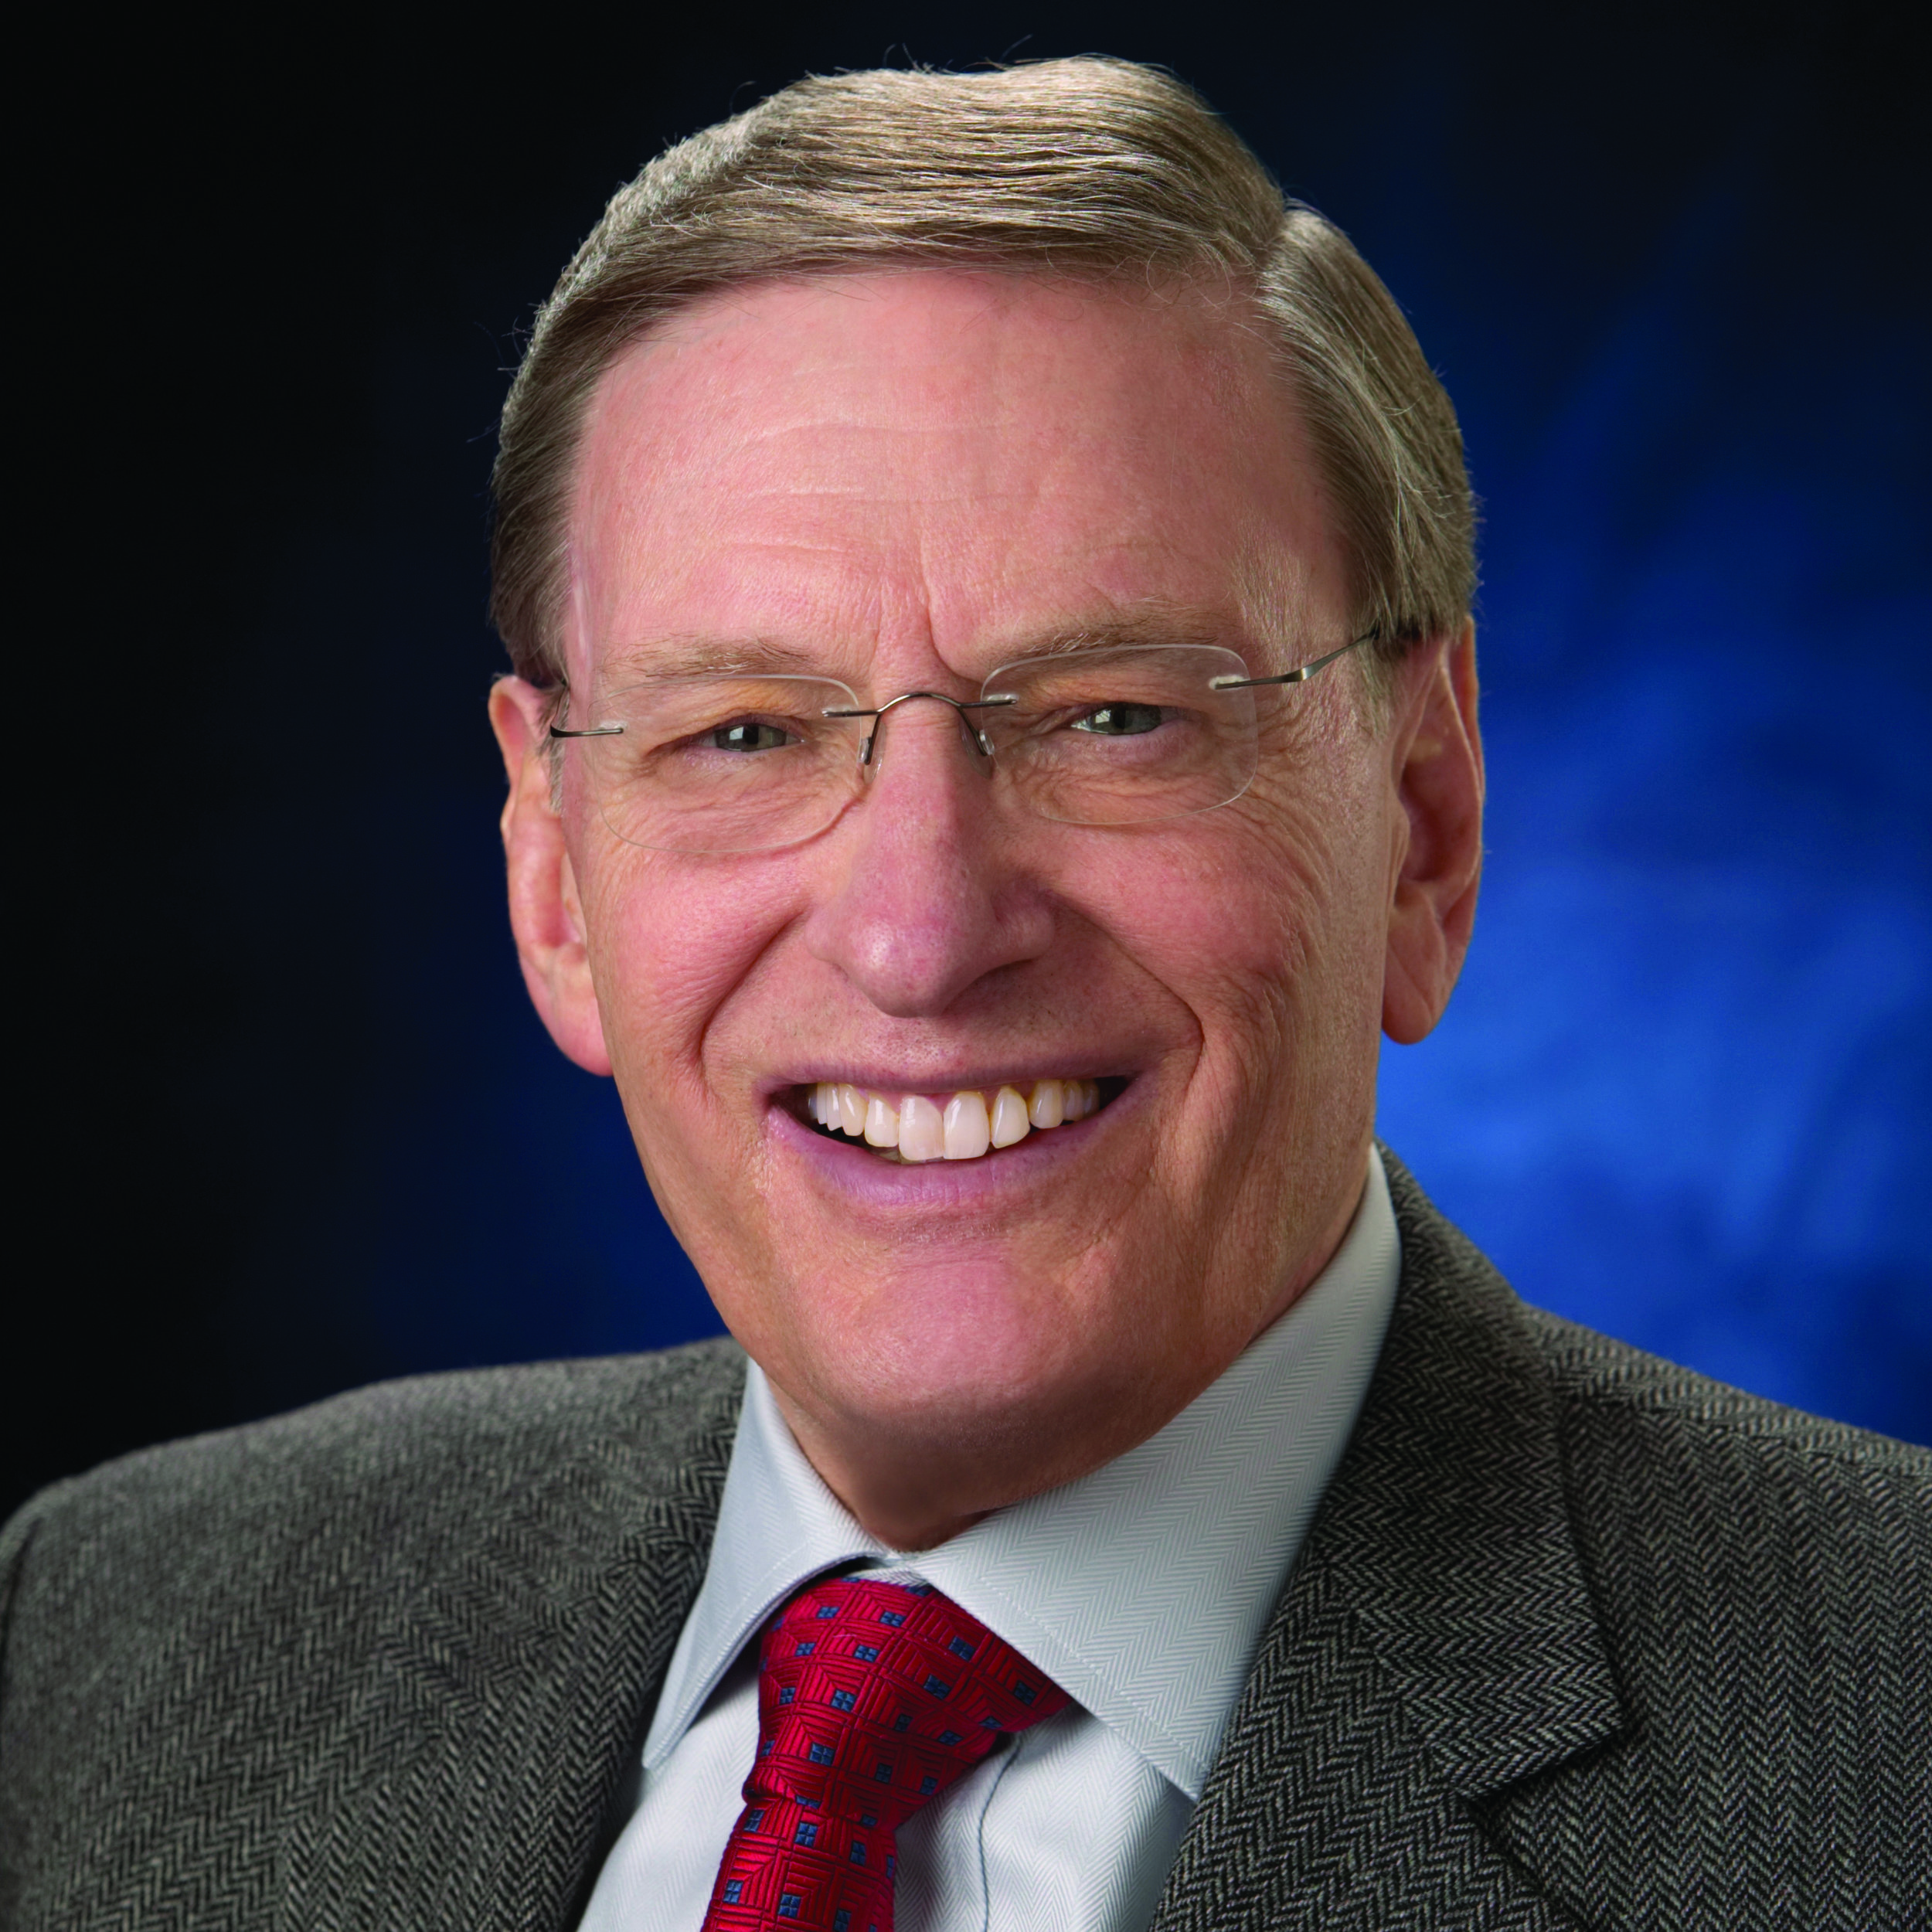 2016 - Bud Selig - MLB'S Commissioner Emeritus, Bud Selig, transformed the game of baseball during 20+ years with MLB. He's credited with bringing baseball back to Milwaukee. As a cancer survivor himself, he utilized MLB to raise cancer awareness, support research and celebrate survivorship.